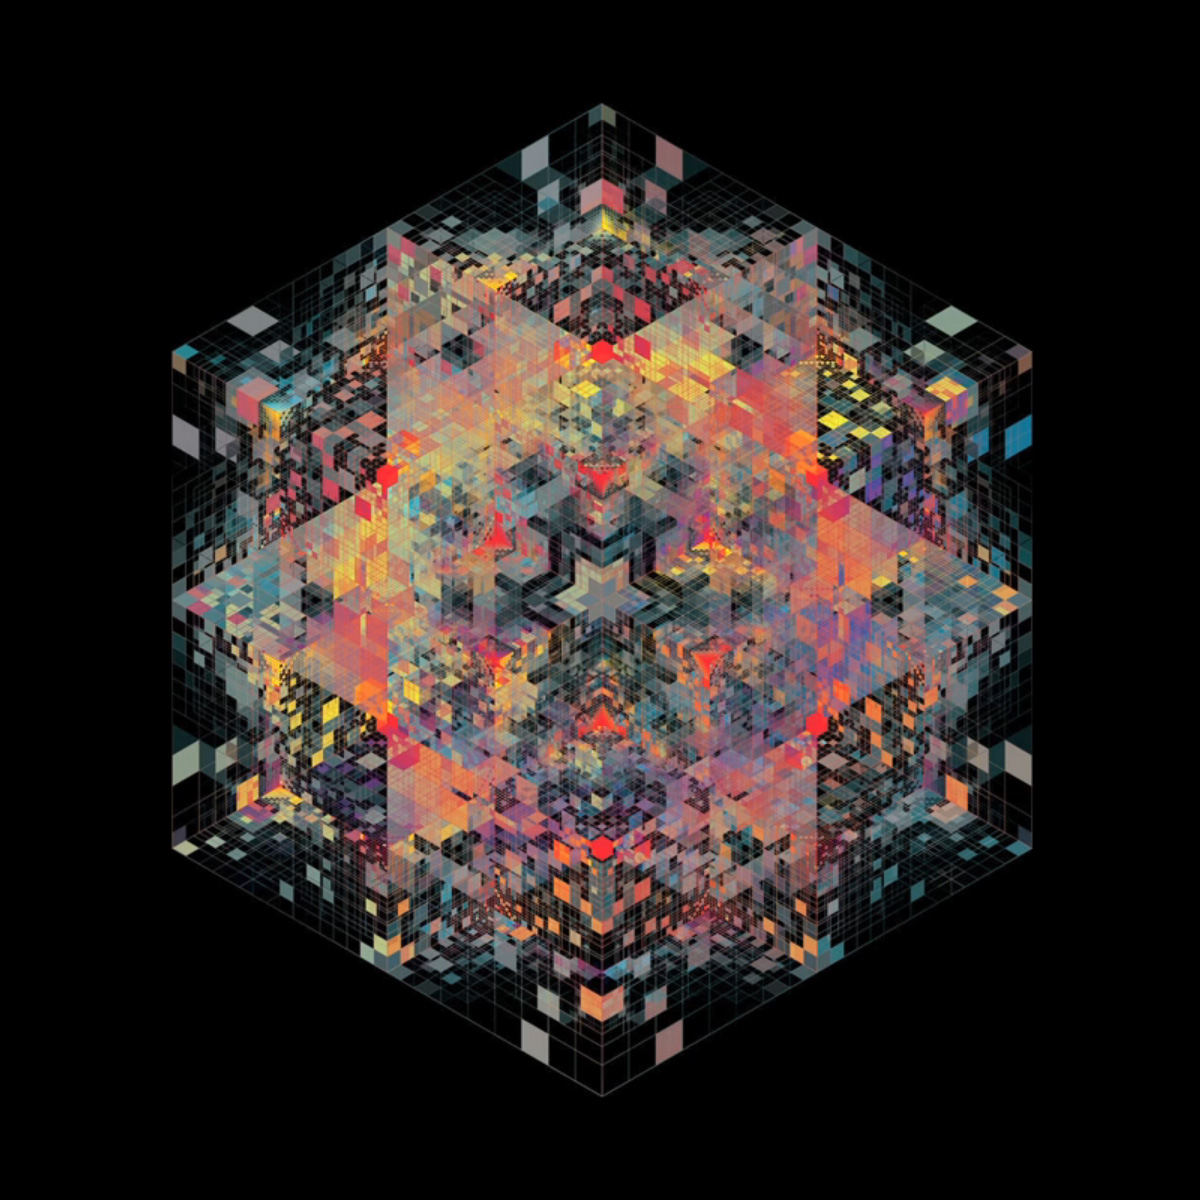 Andy Gilmore / Ghostly International